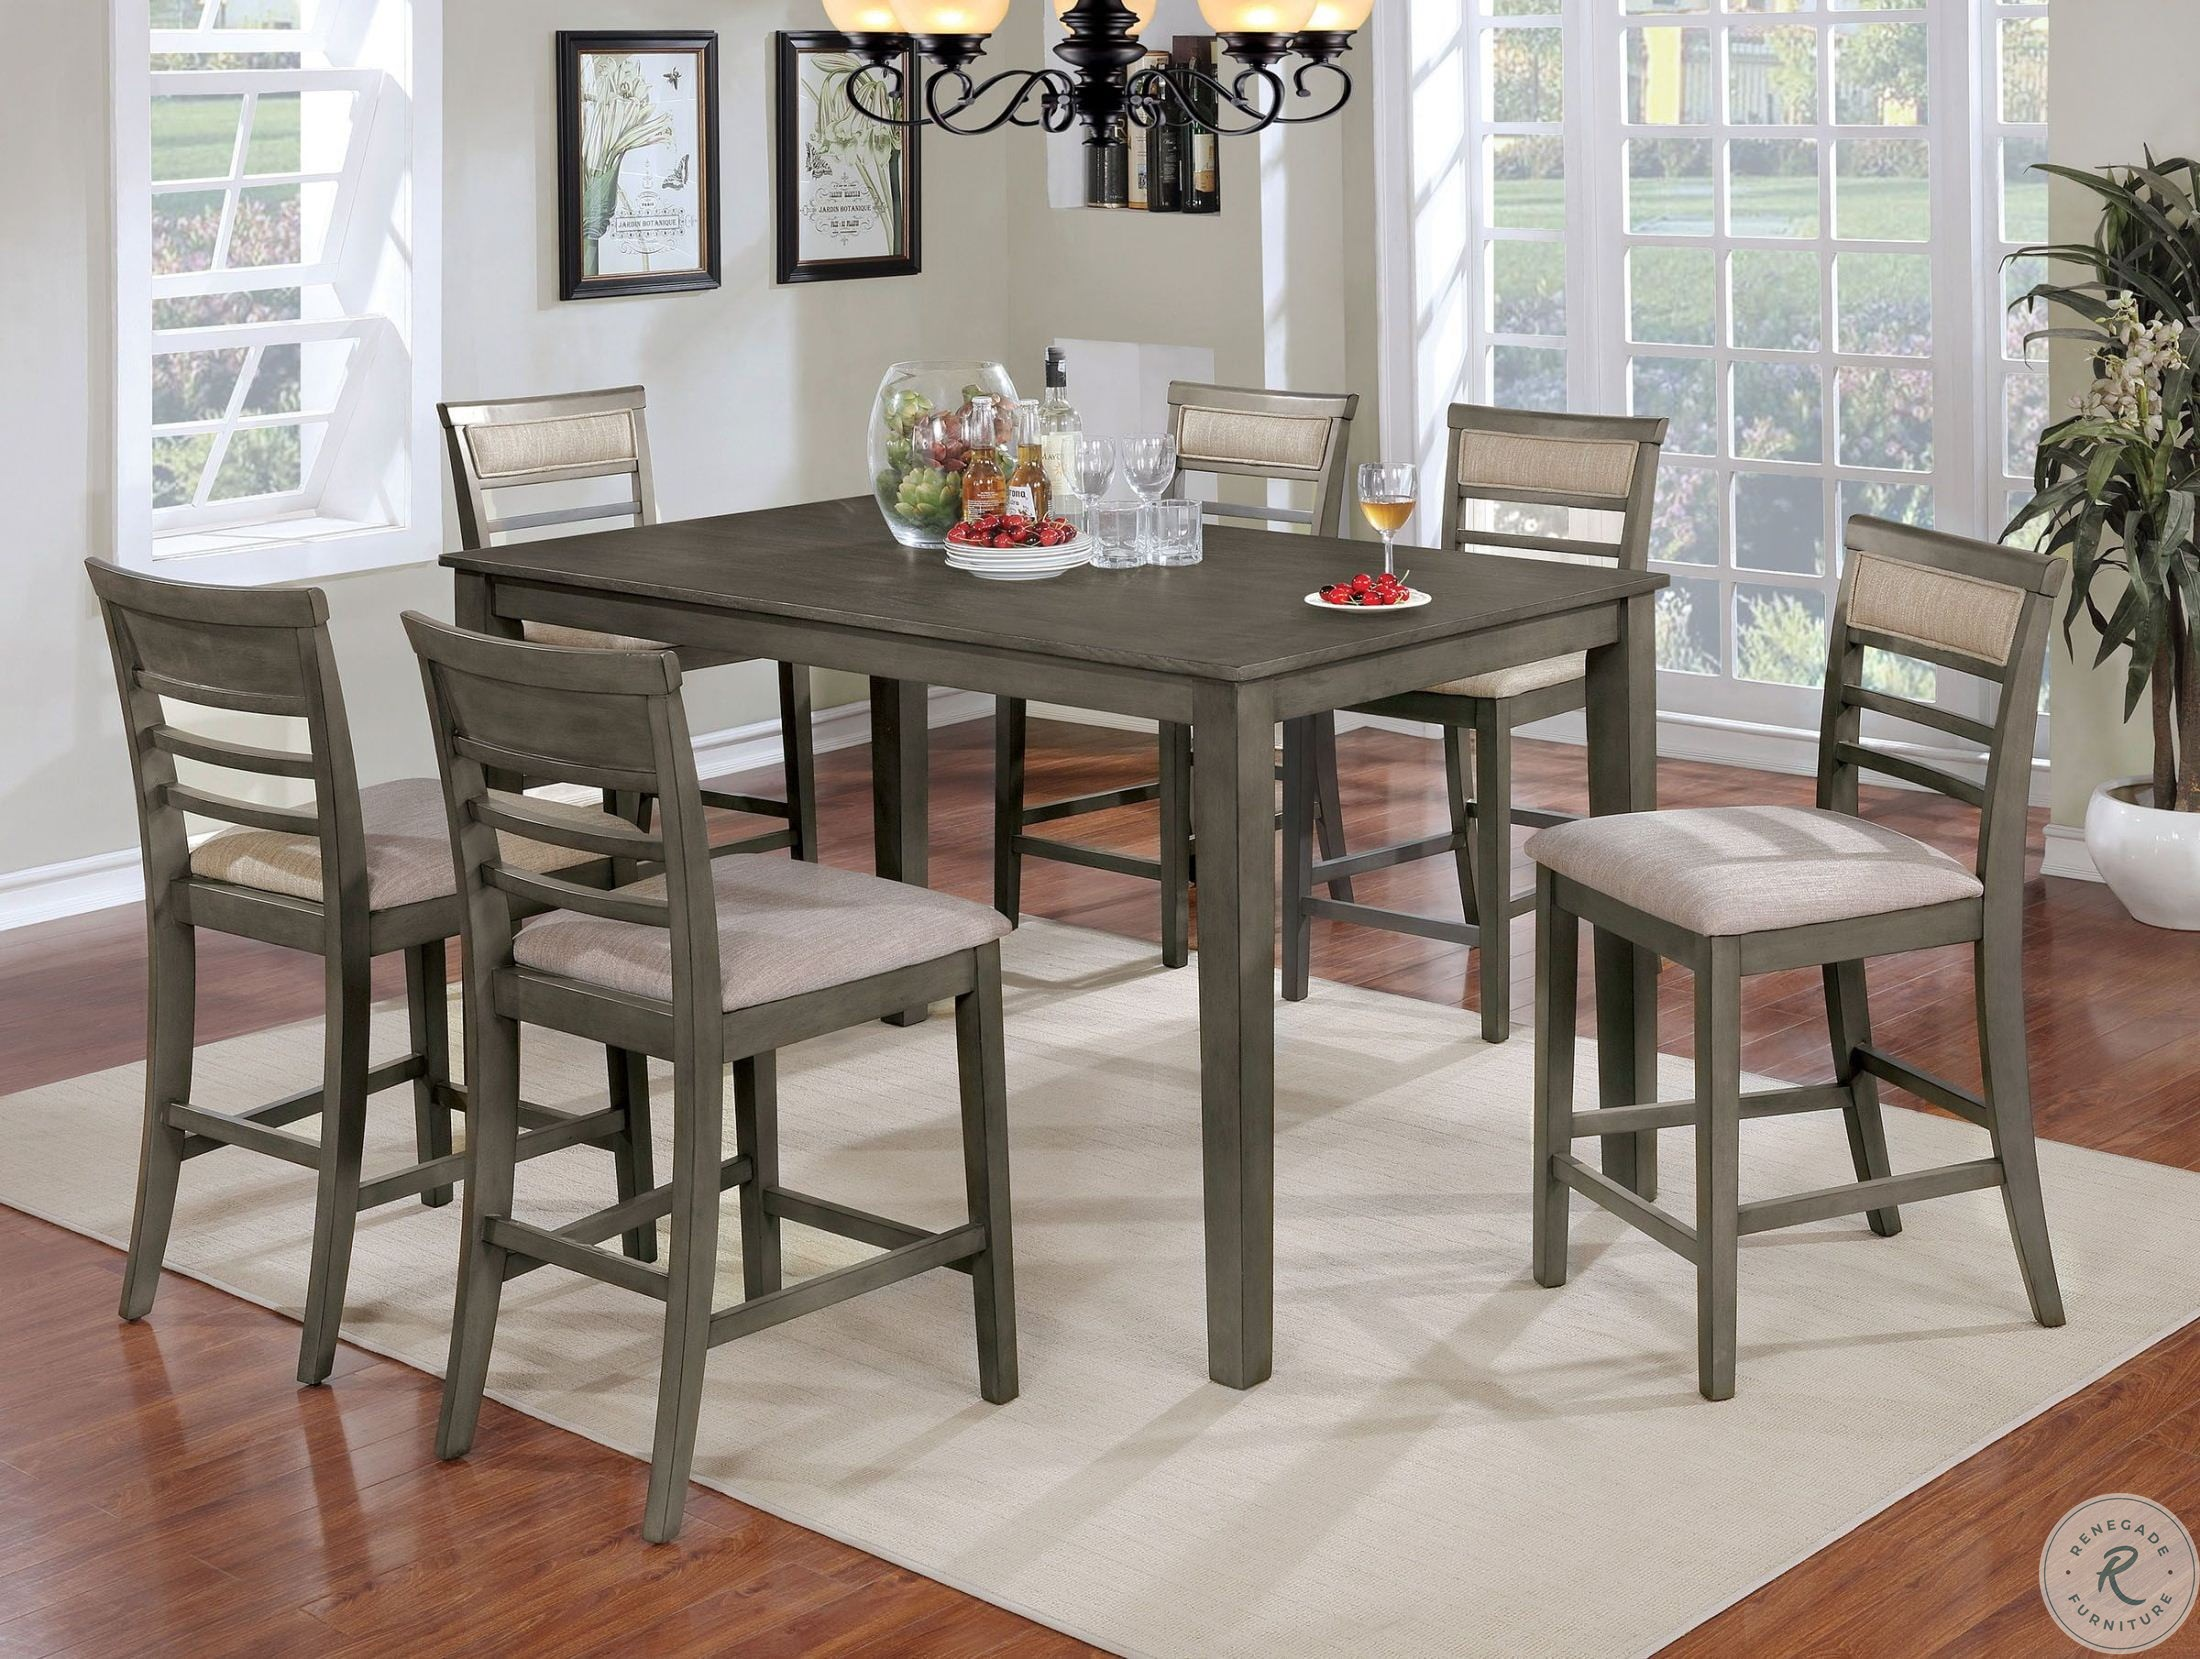 0248b12ea491 Fafnir Gray 7 Piece Counter Height Dining Room Set from Furniture of ...